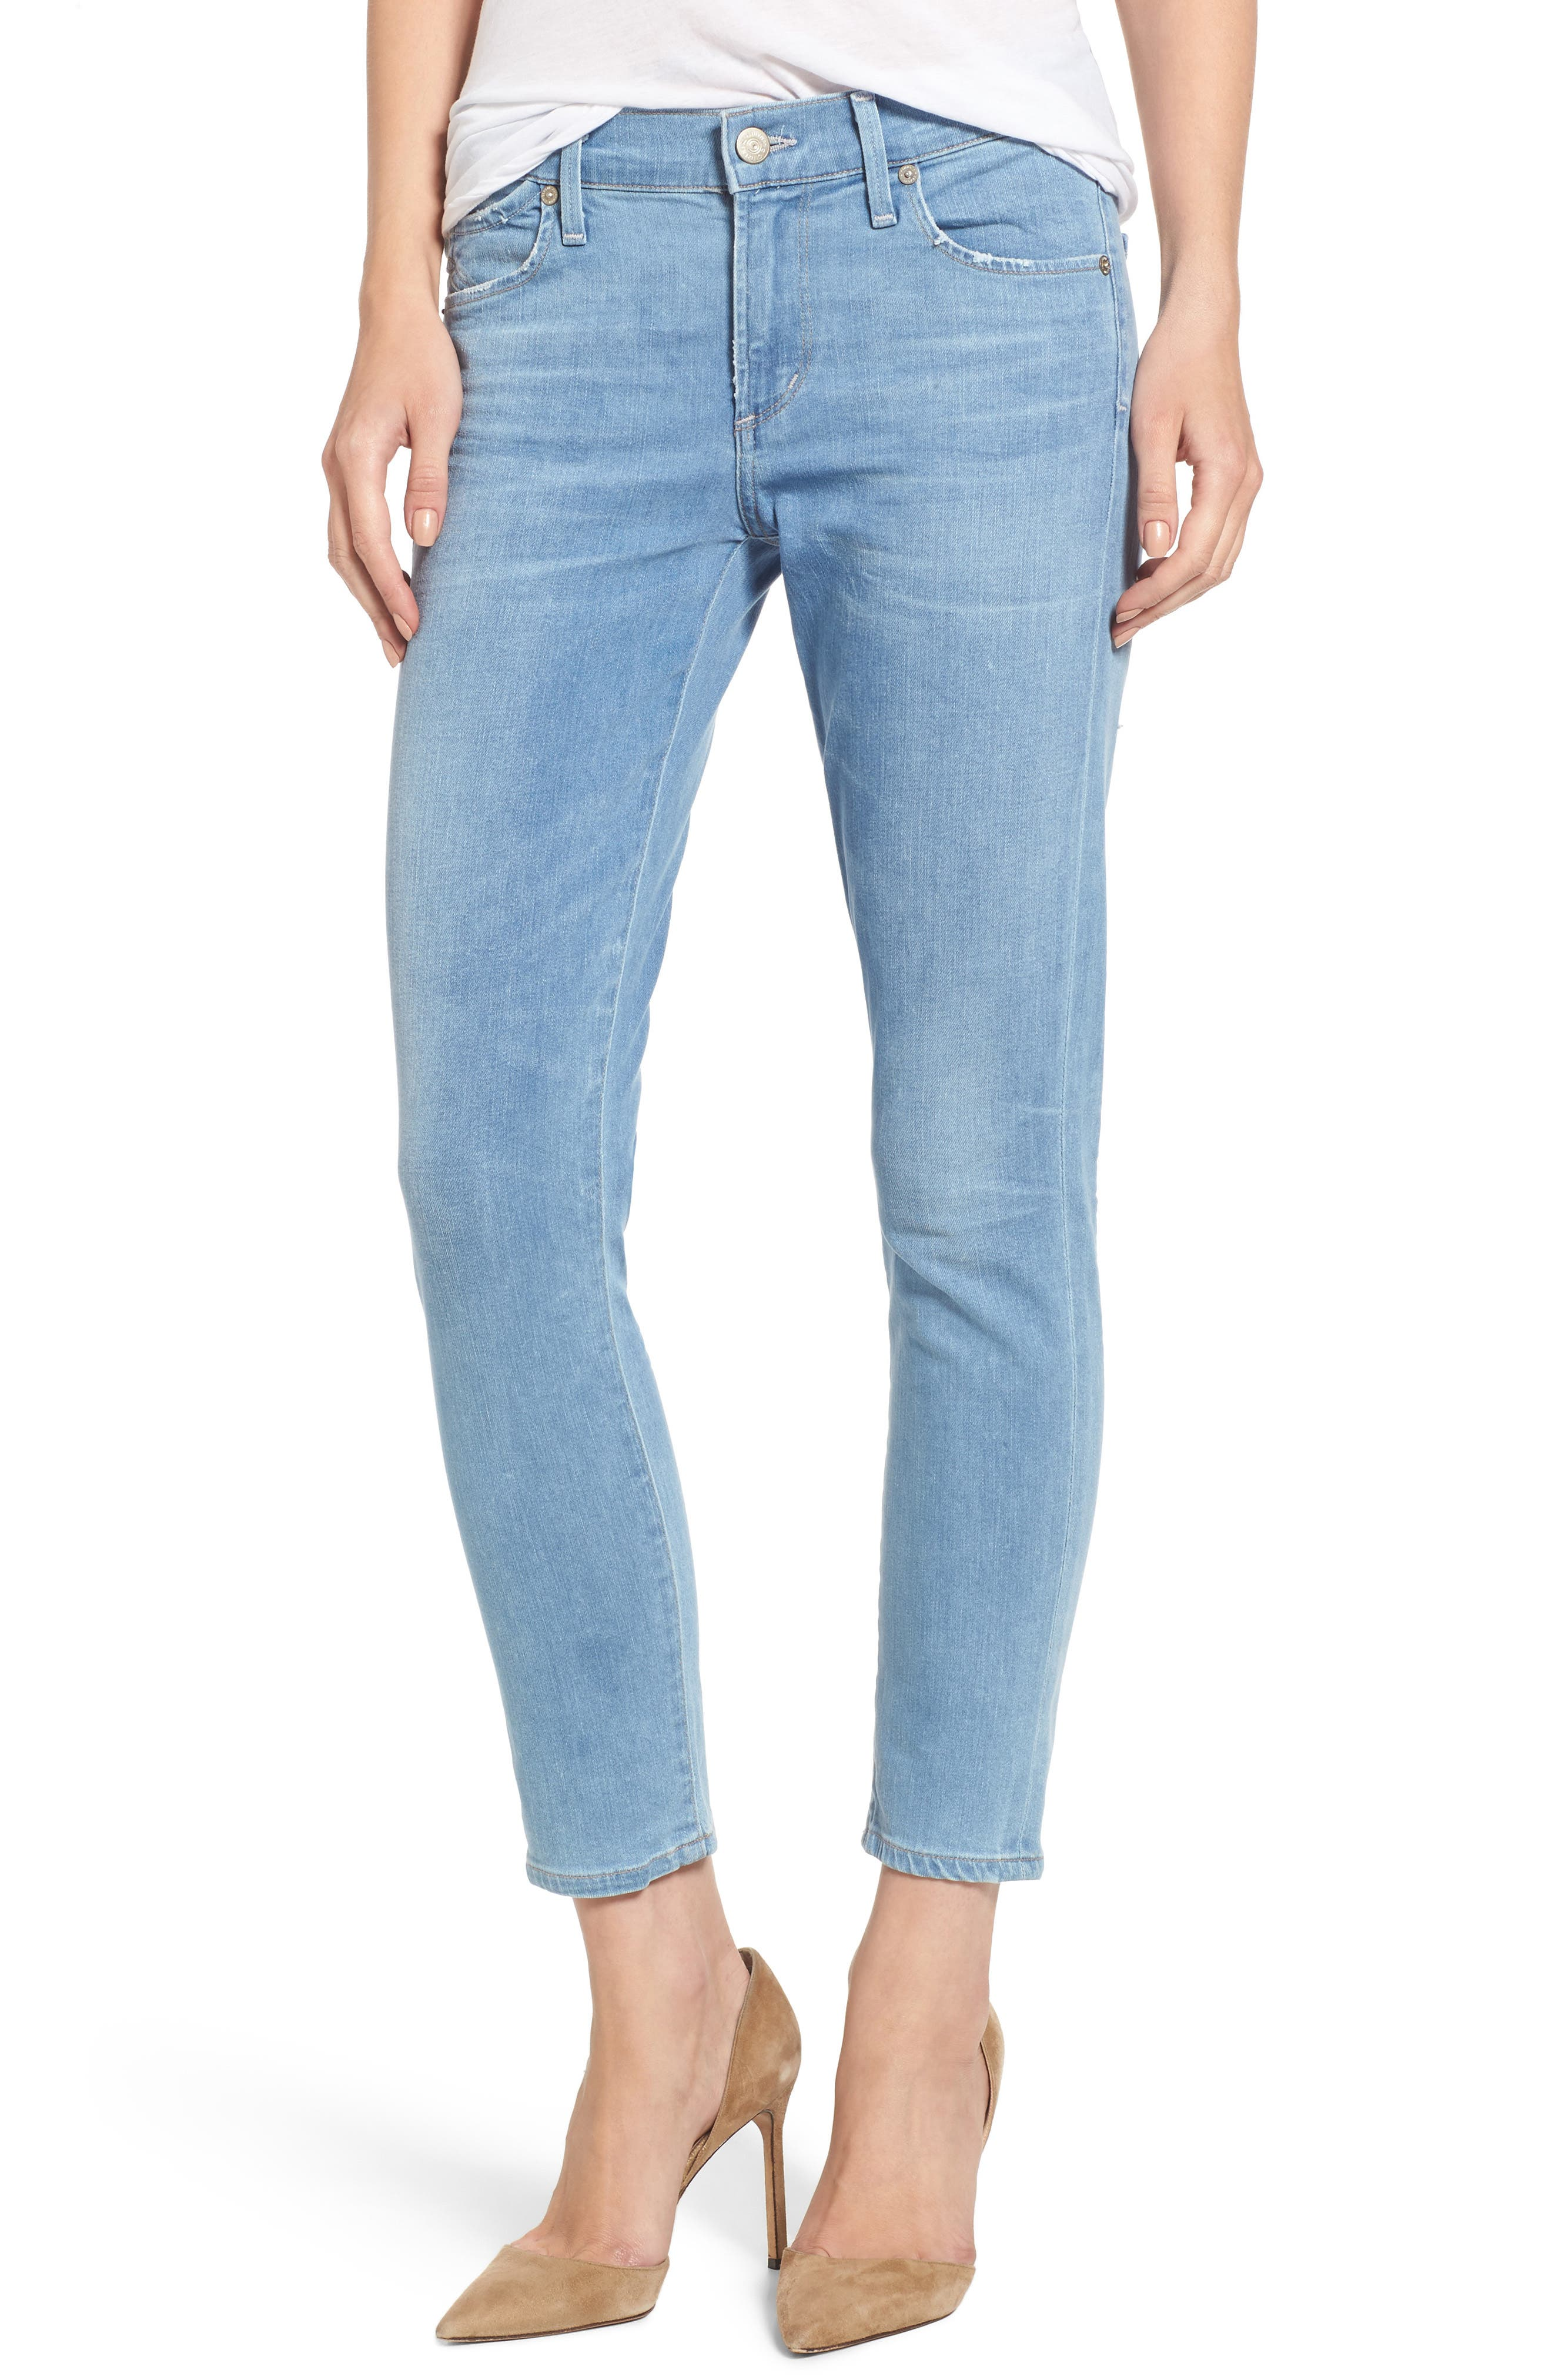 Avedon Ultra Skinny Jeans,                             Main thumbnail 1, color,                             455